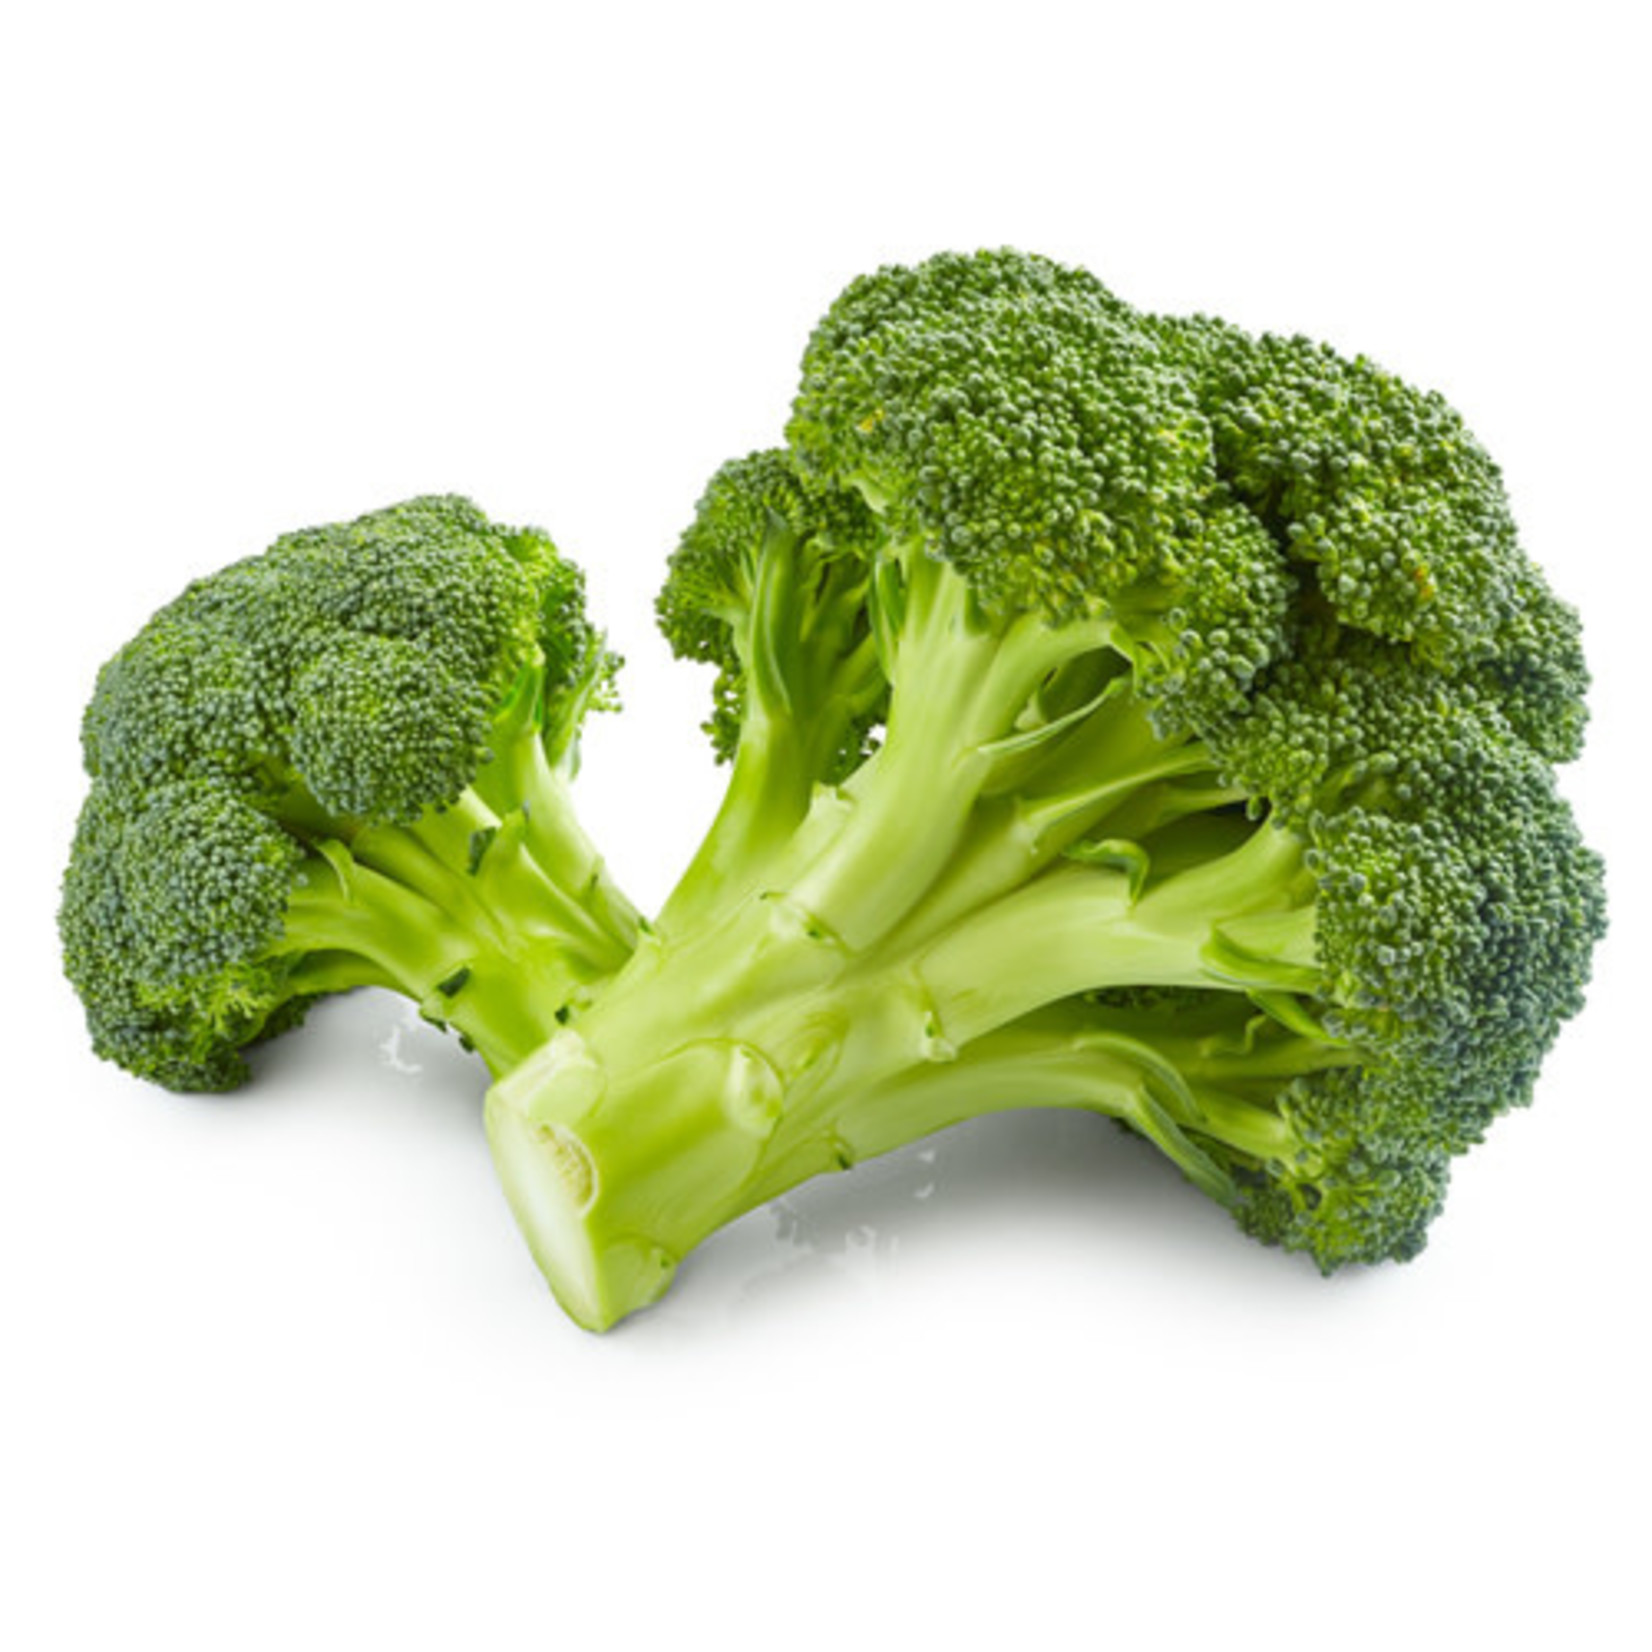 Broccoli ORGANIC (seed pkg) - Green Sprouting